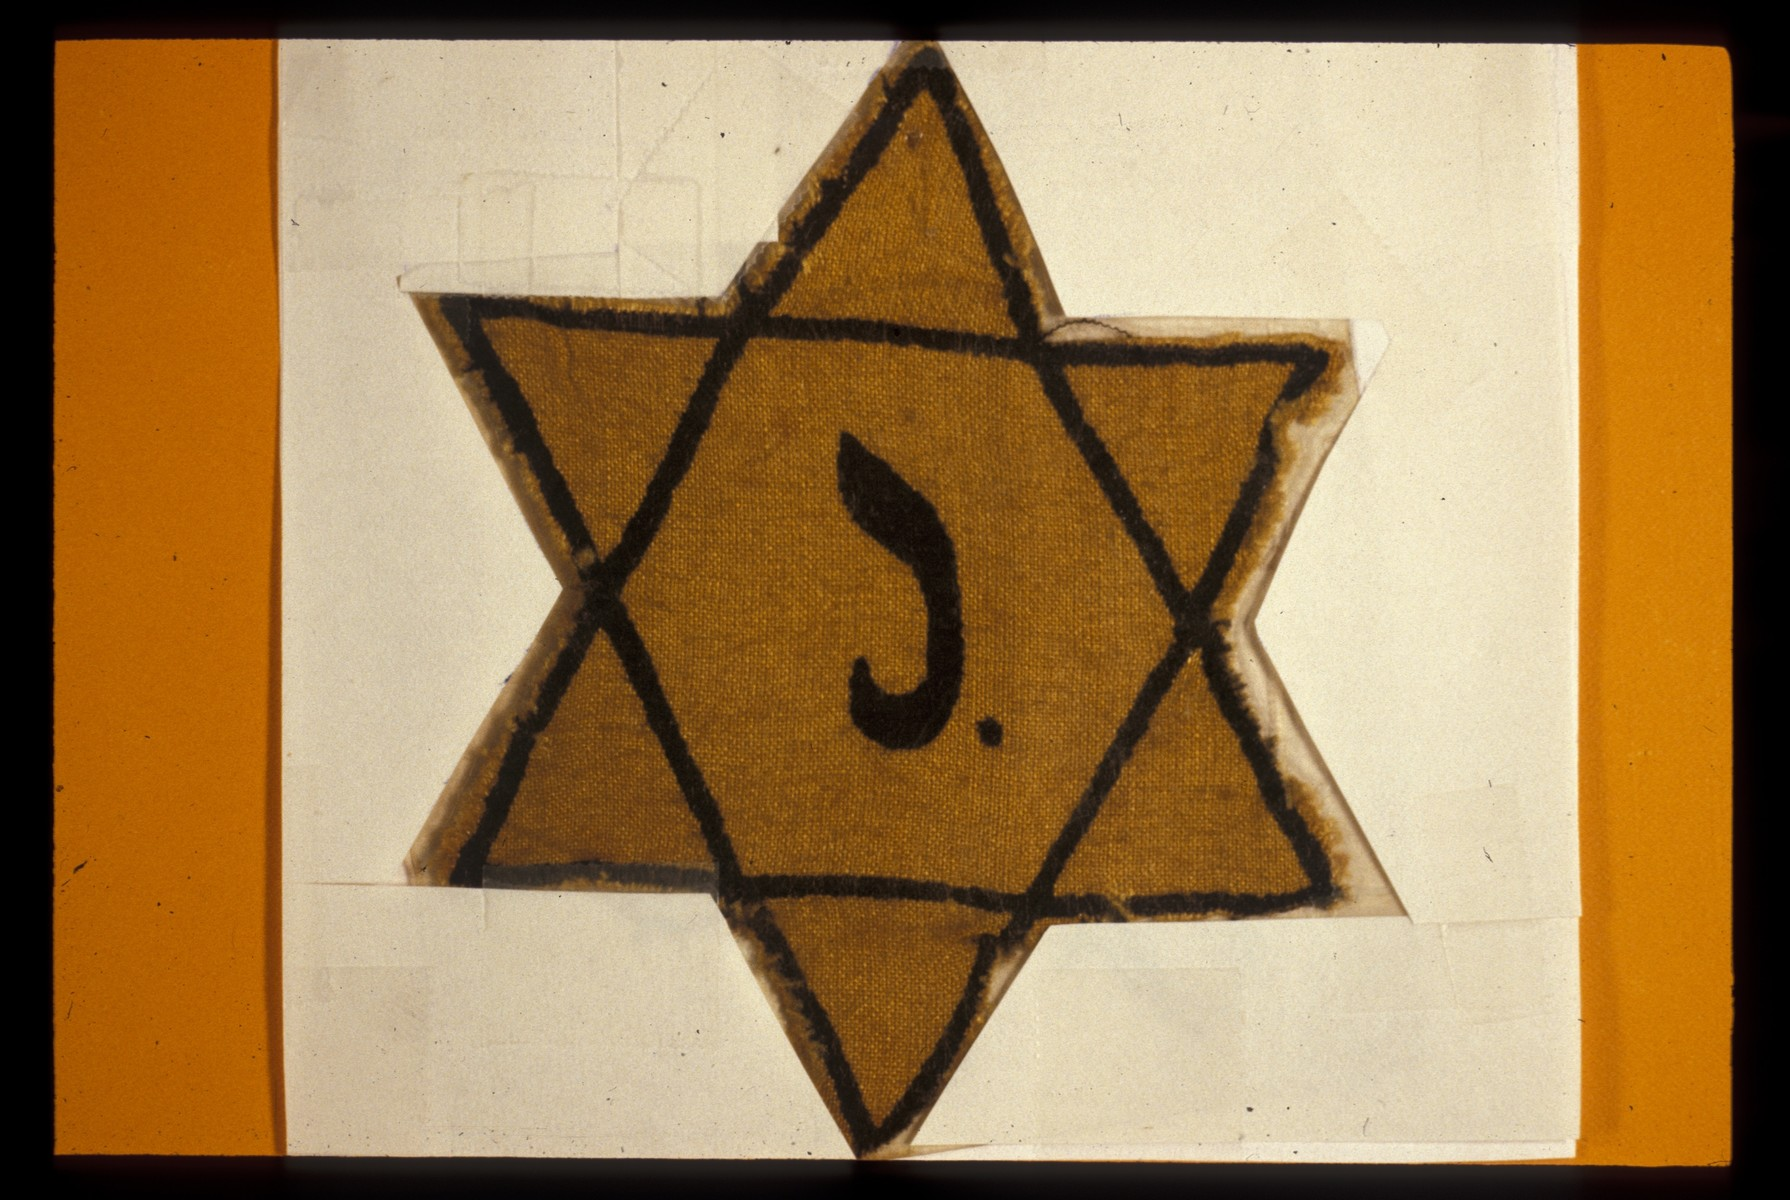 A cloth Star of David stamped with a J for Juif.